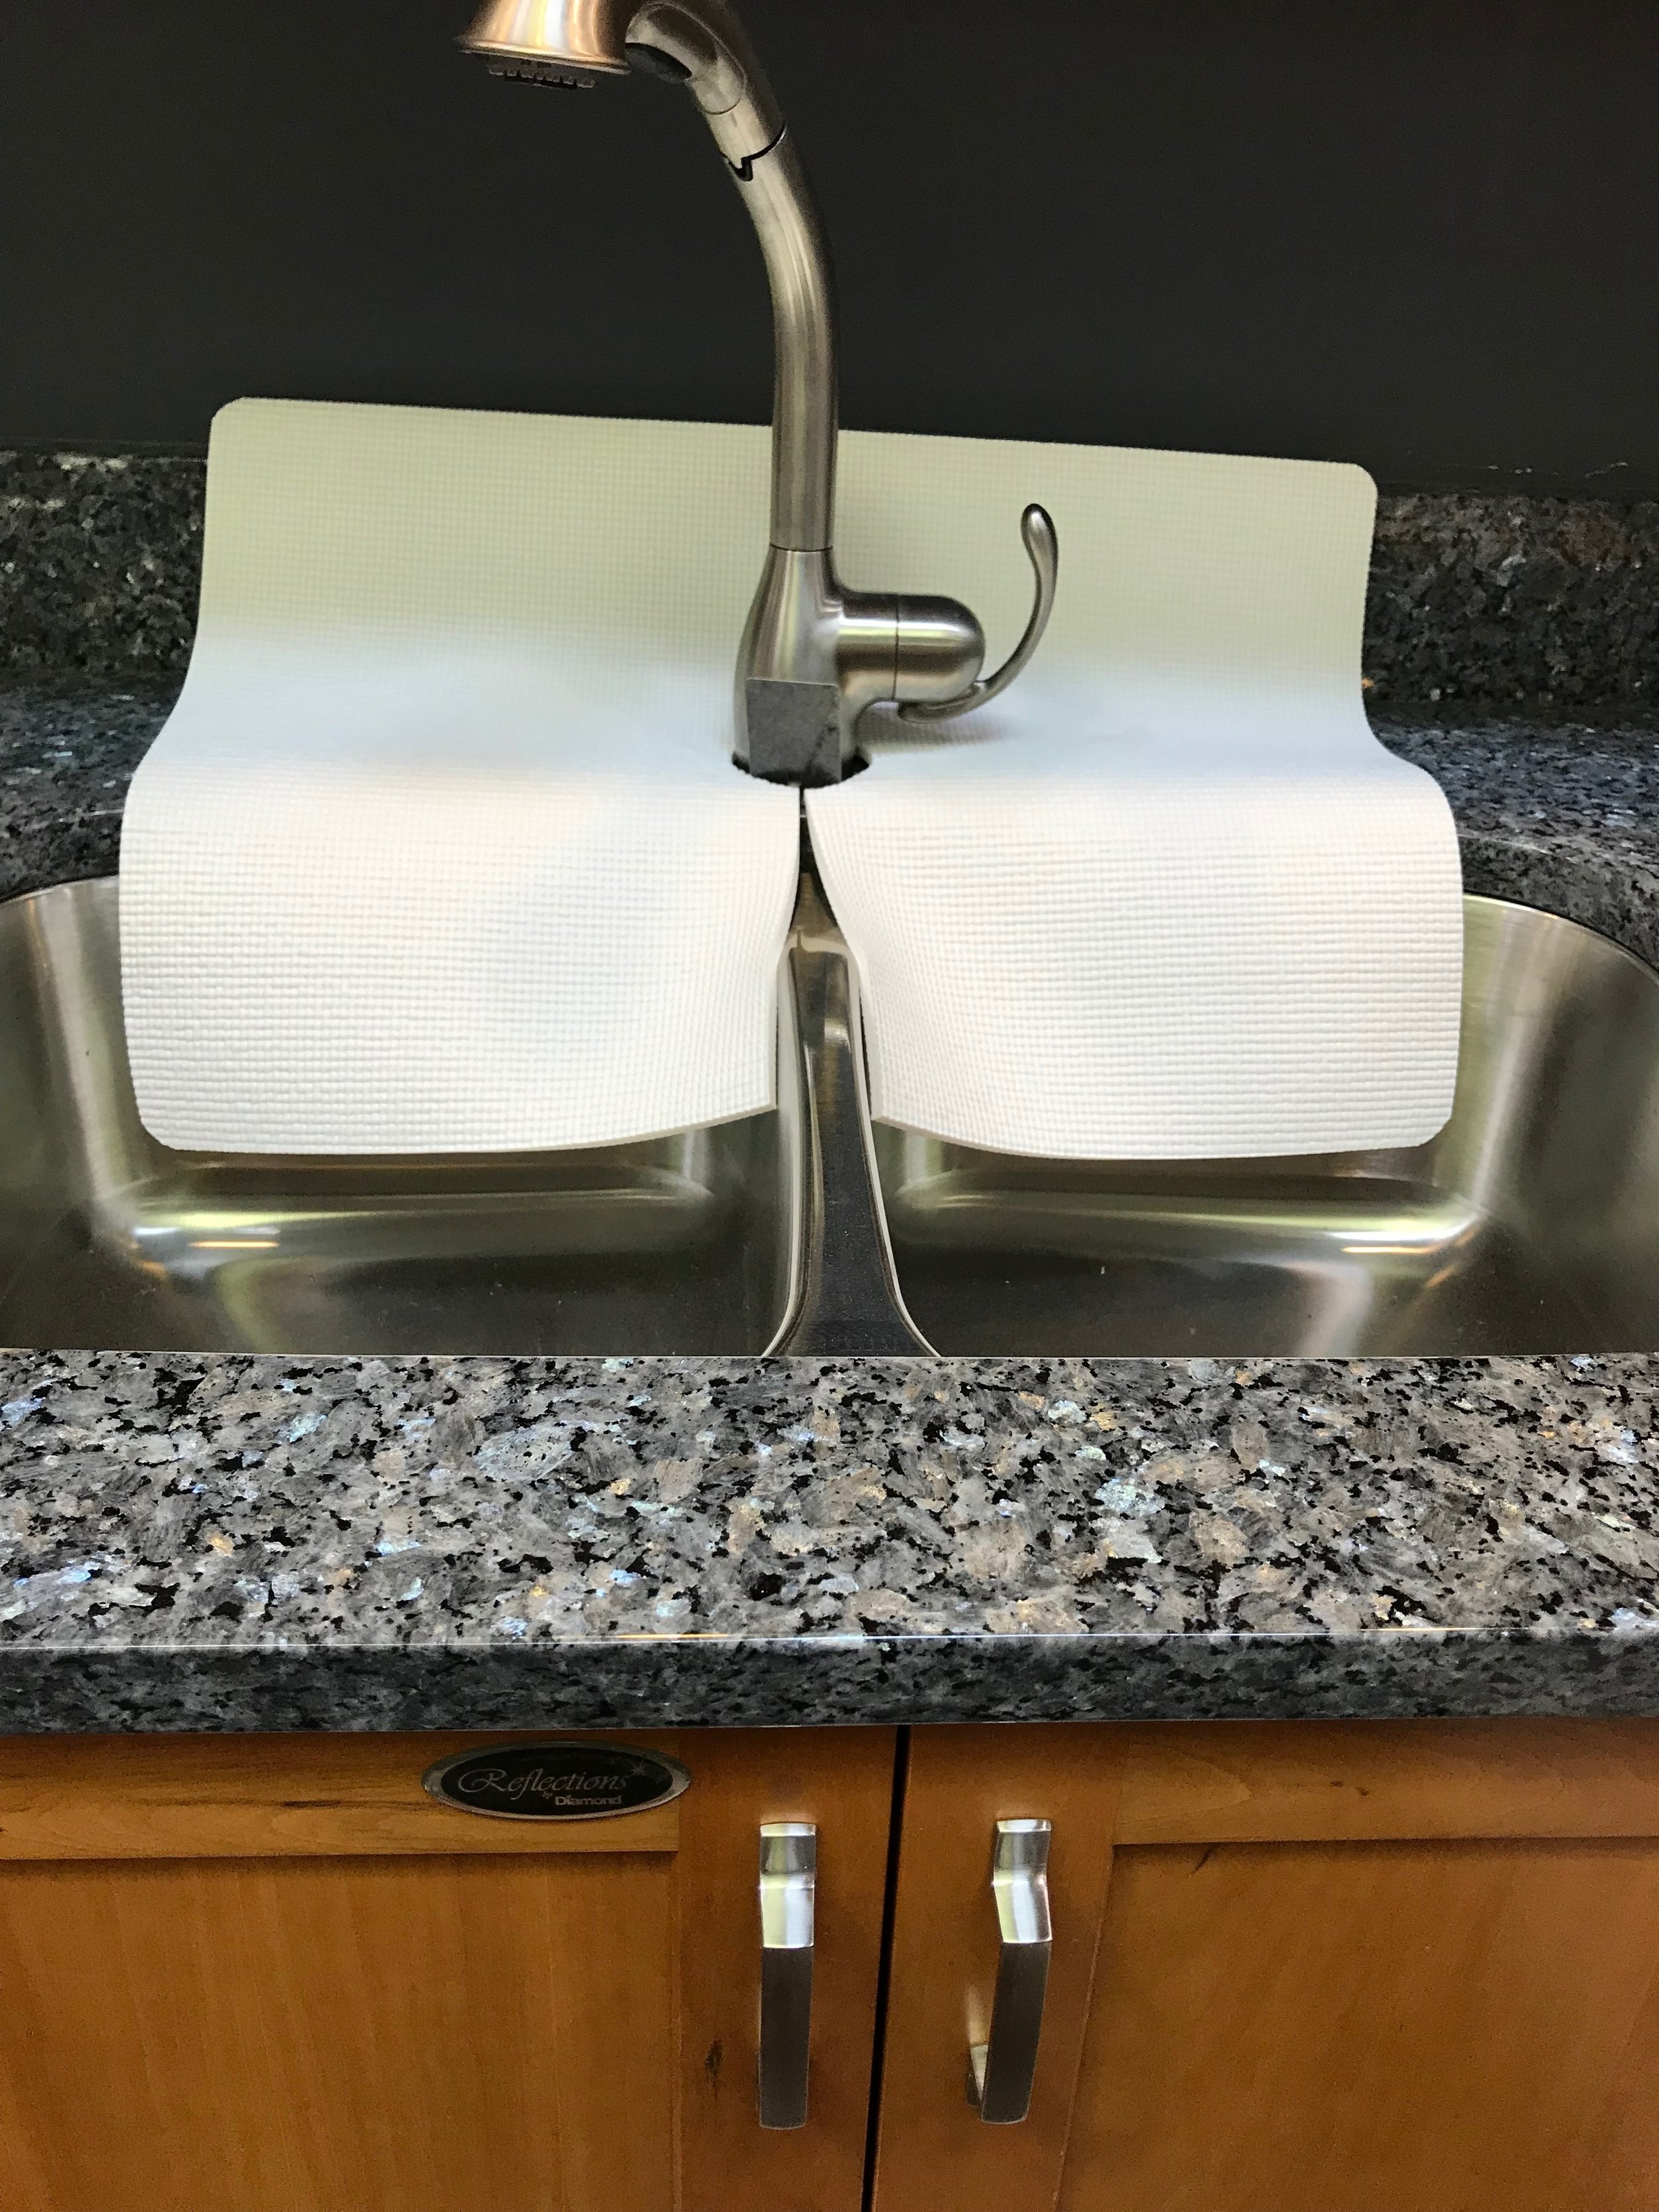 White Kitchen Sink Faucet Splash Guard, guards faucet area from water  damage, 17 in width x 23 in length, TM(4), copyright 2019, patent pending —  ...